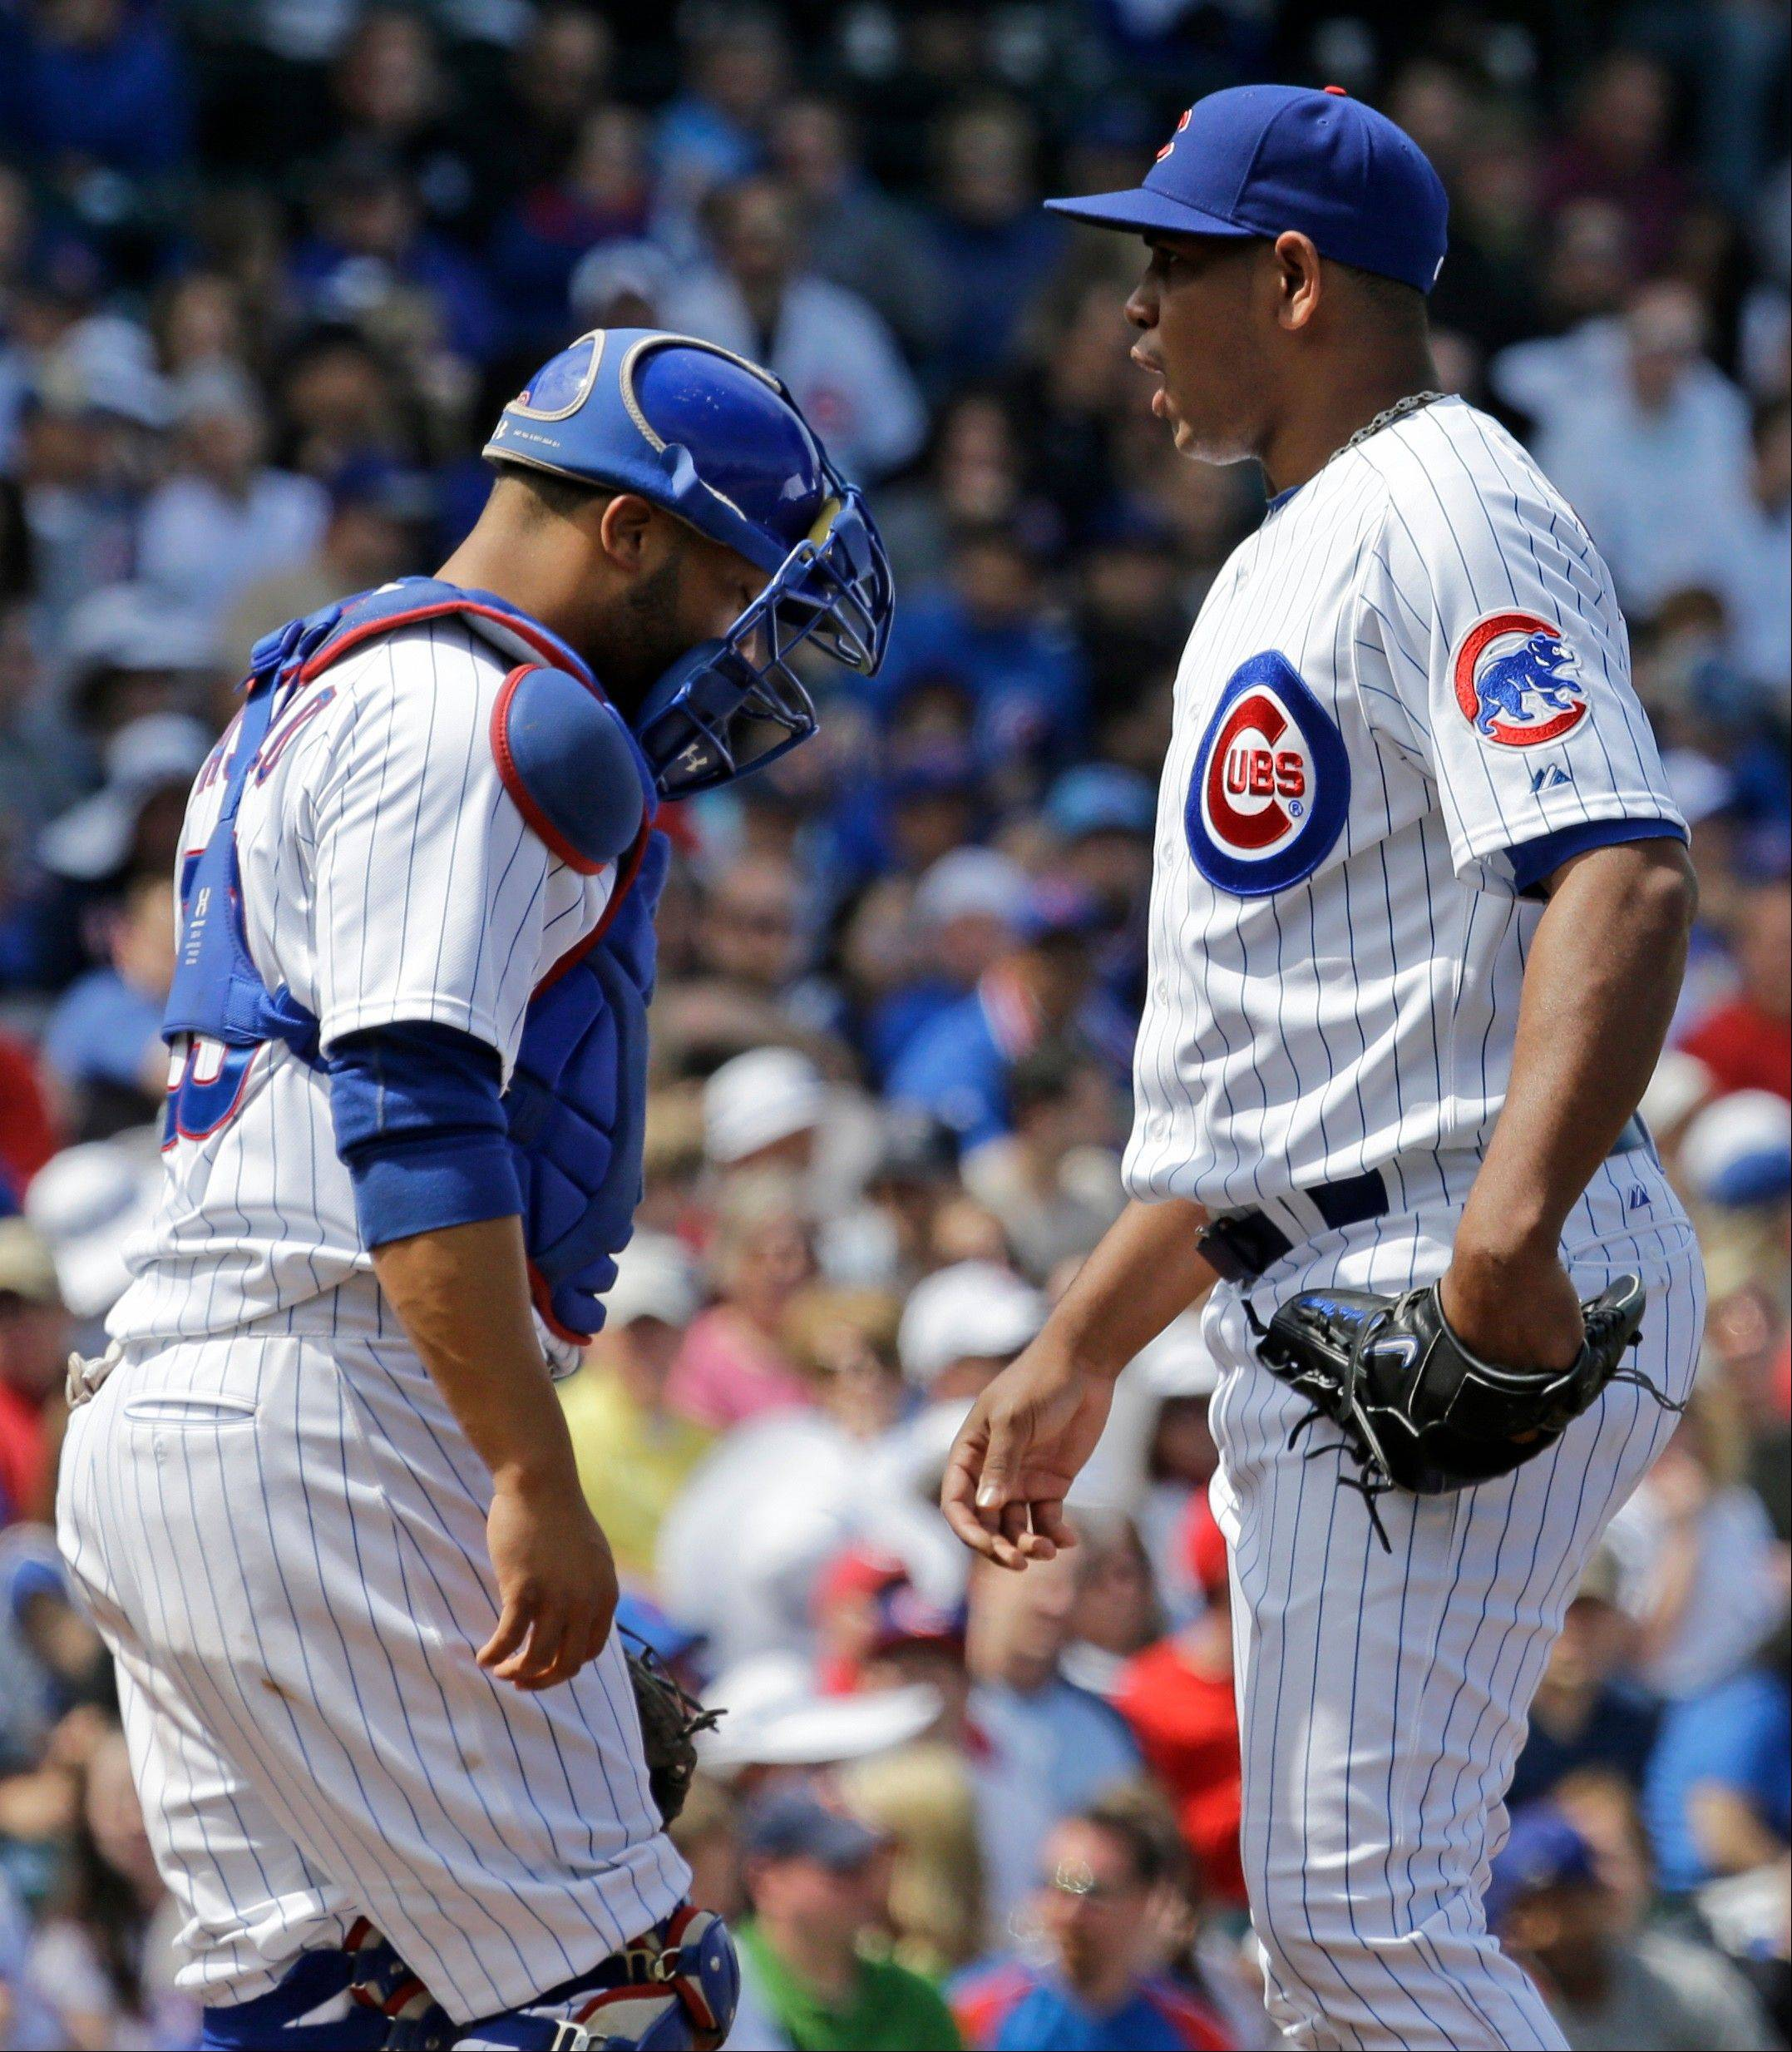 Cubs' Marmol will keep getting the ball